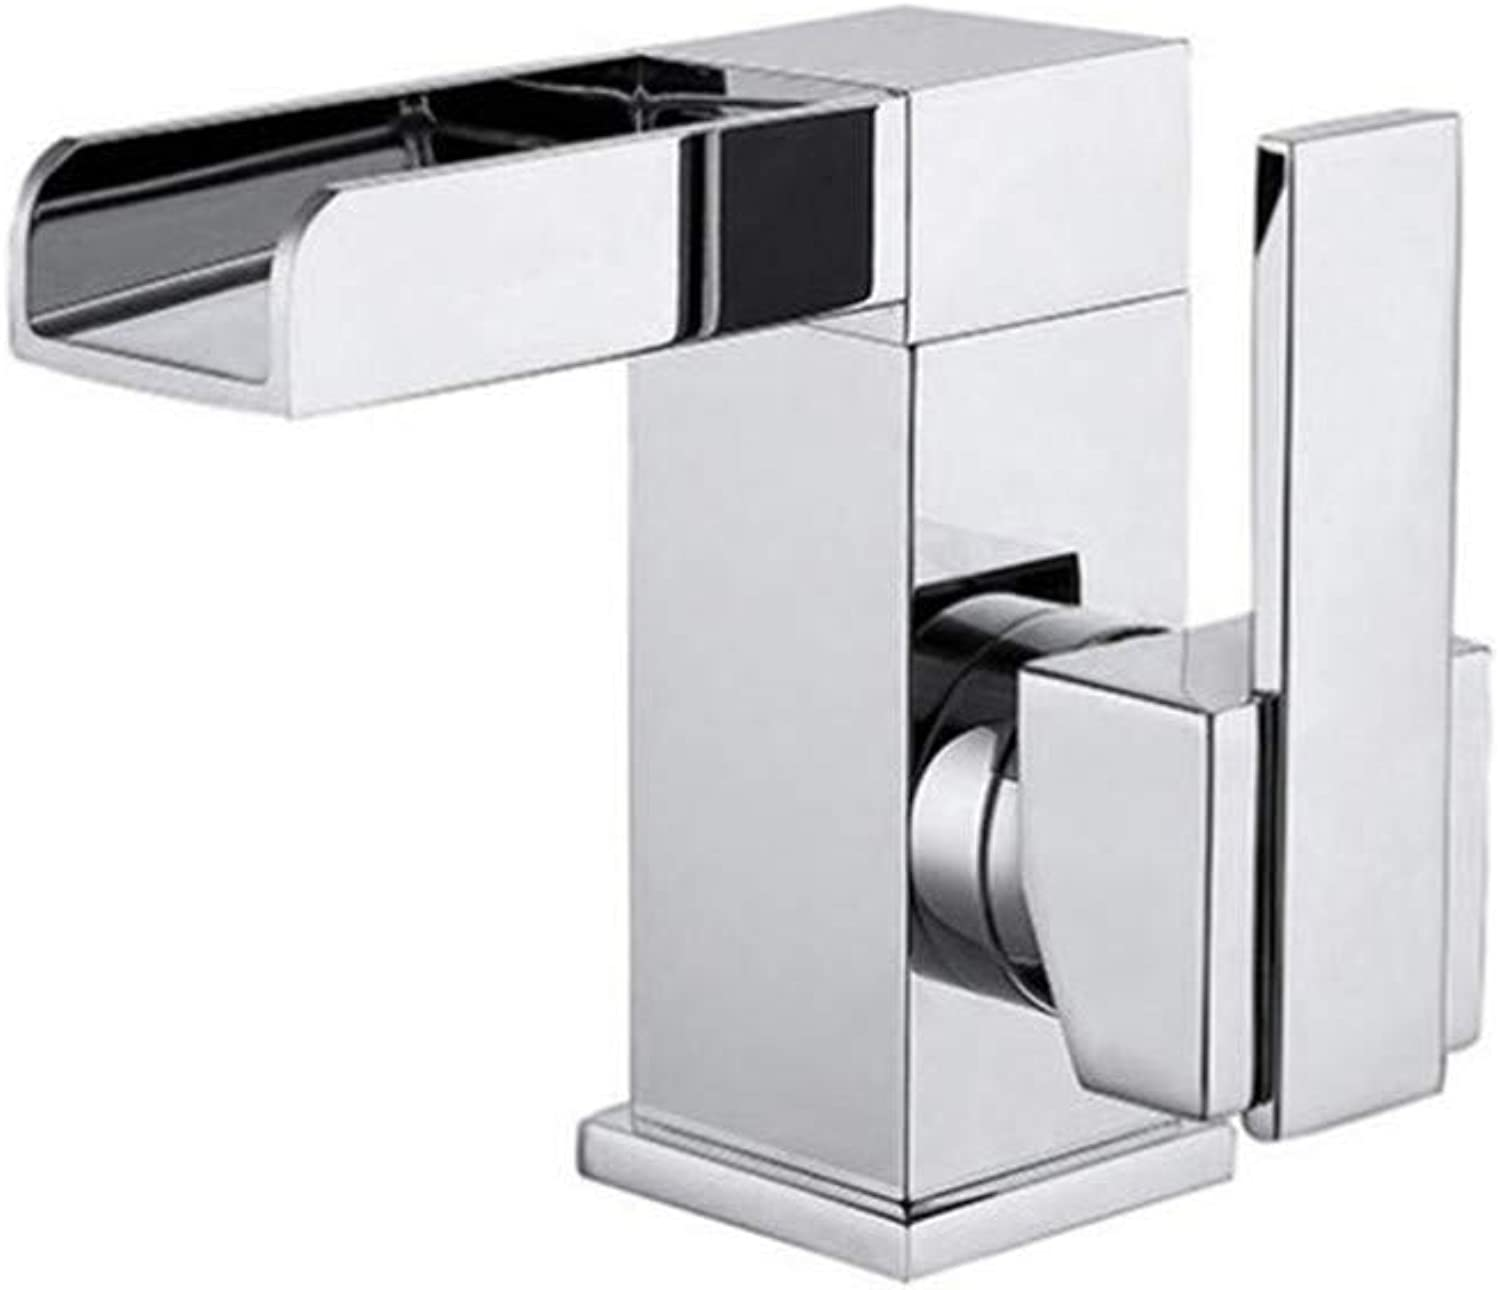 Ledu Basin Faucet,Stunning Waterfall Bathroom Sink Monoblock Mixer Faucet Chrome